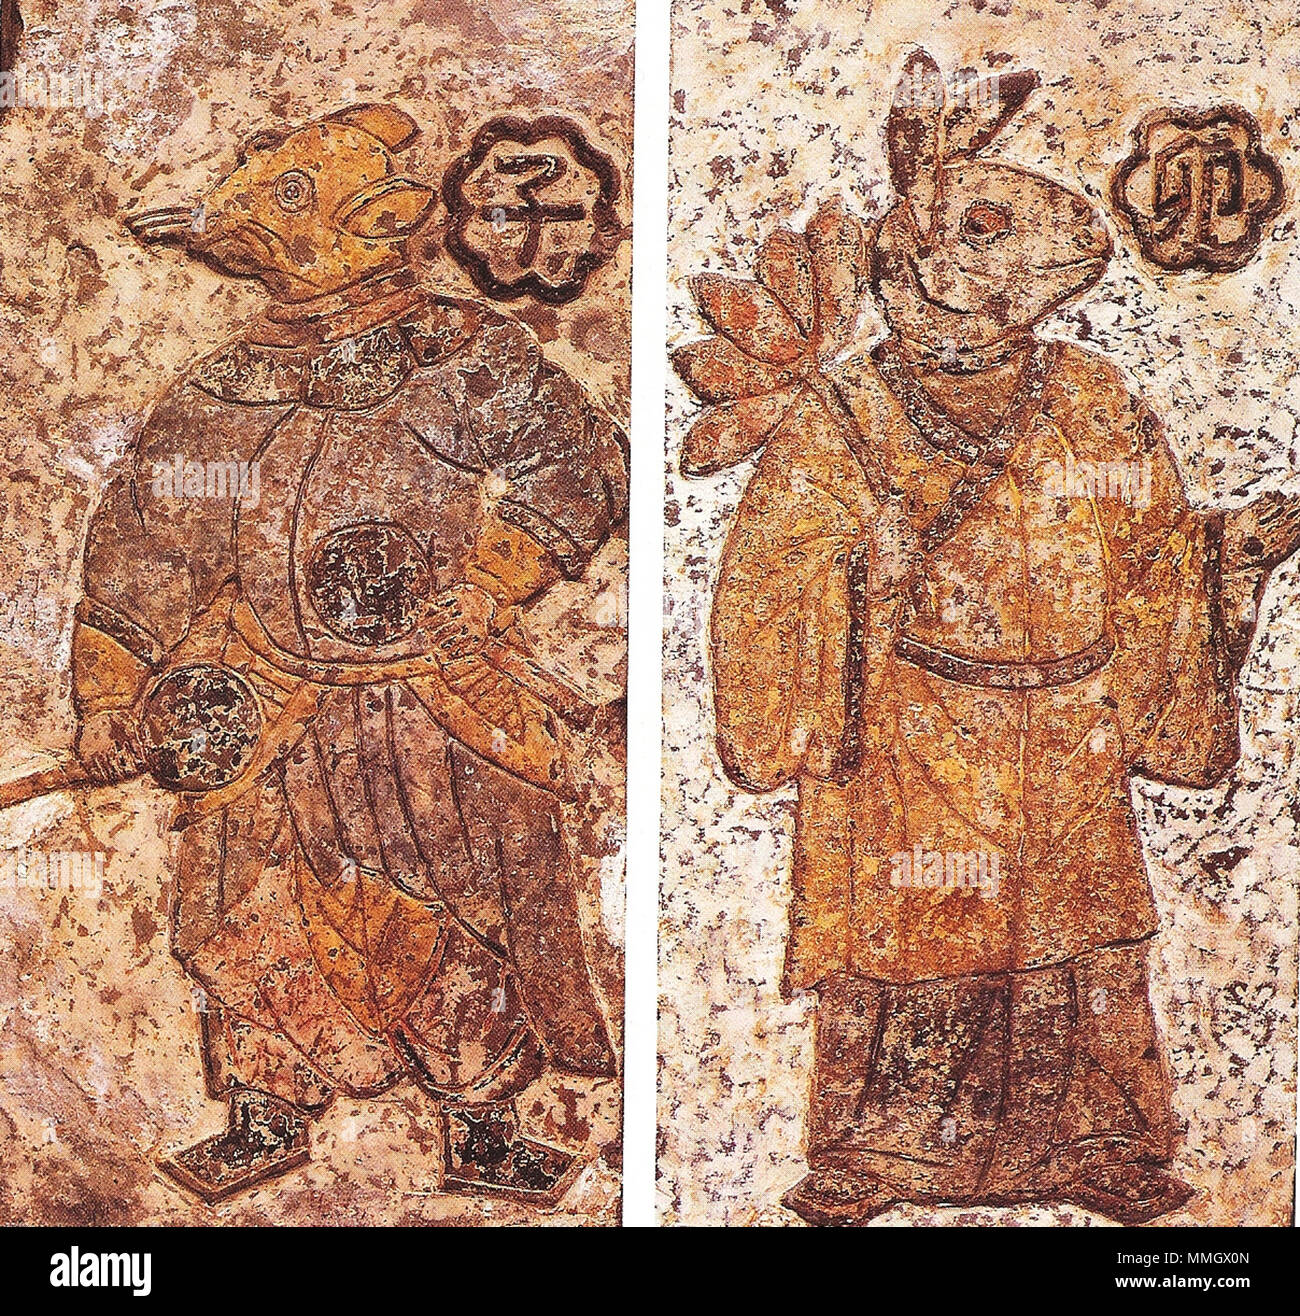 Paintings On Ceramic Tile From The Chinese Han Dynasty 202 Bc 220 Ad These Figures Cloaked In Han Chinese Robes Represent Guardian Spirits Of Certain Divisions Of Day And Night